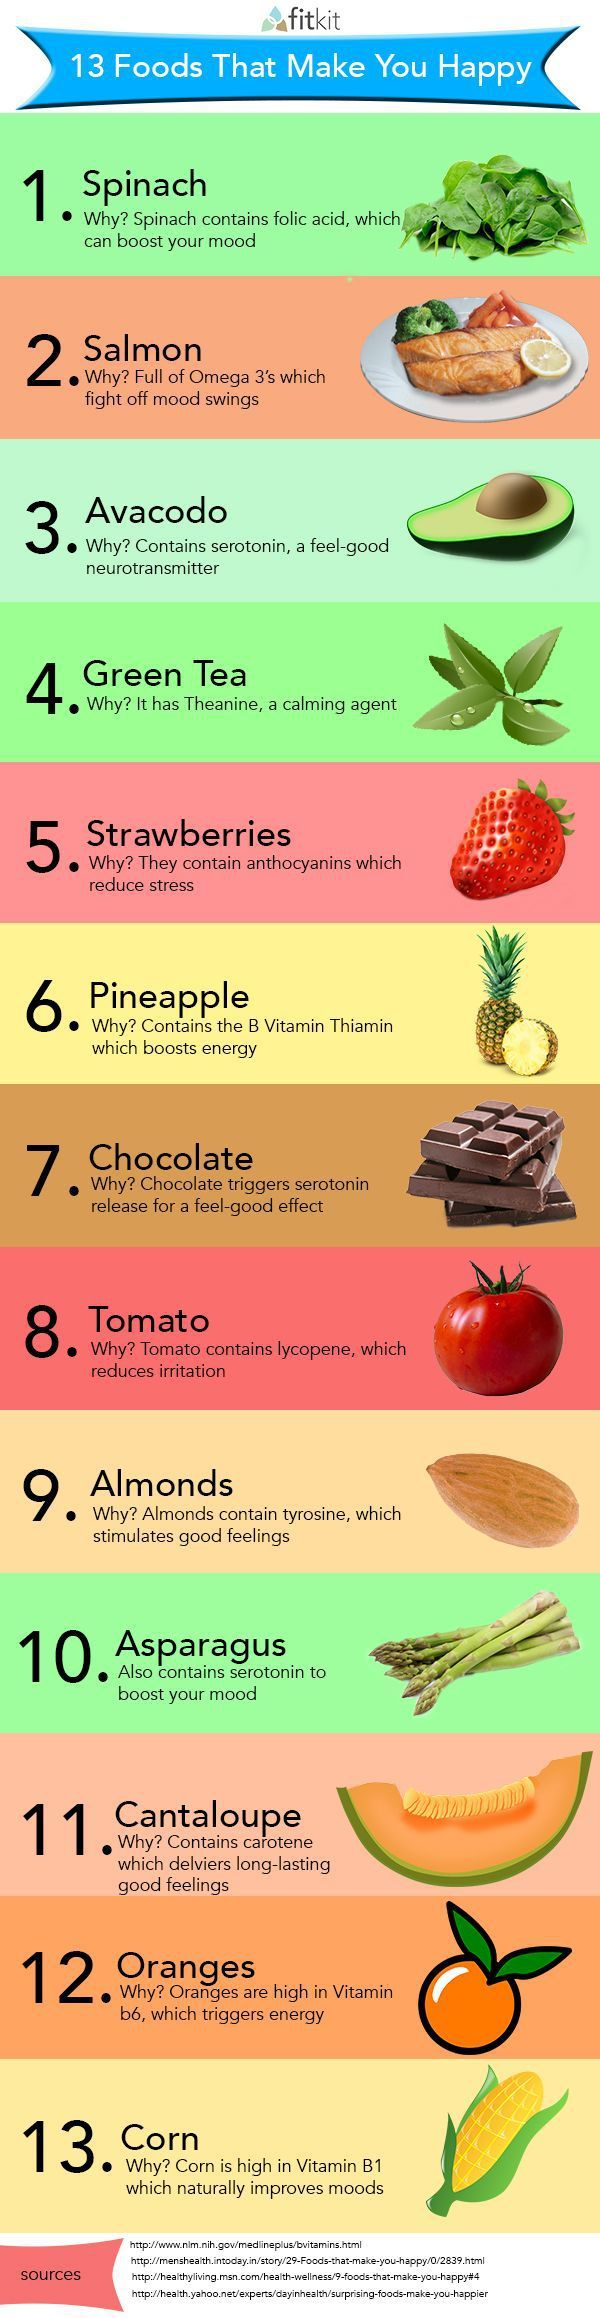 Need a #moodboost? C/O these 13 foods that make you happy! Add Karma Wellness Water SPIRIT to the list!